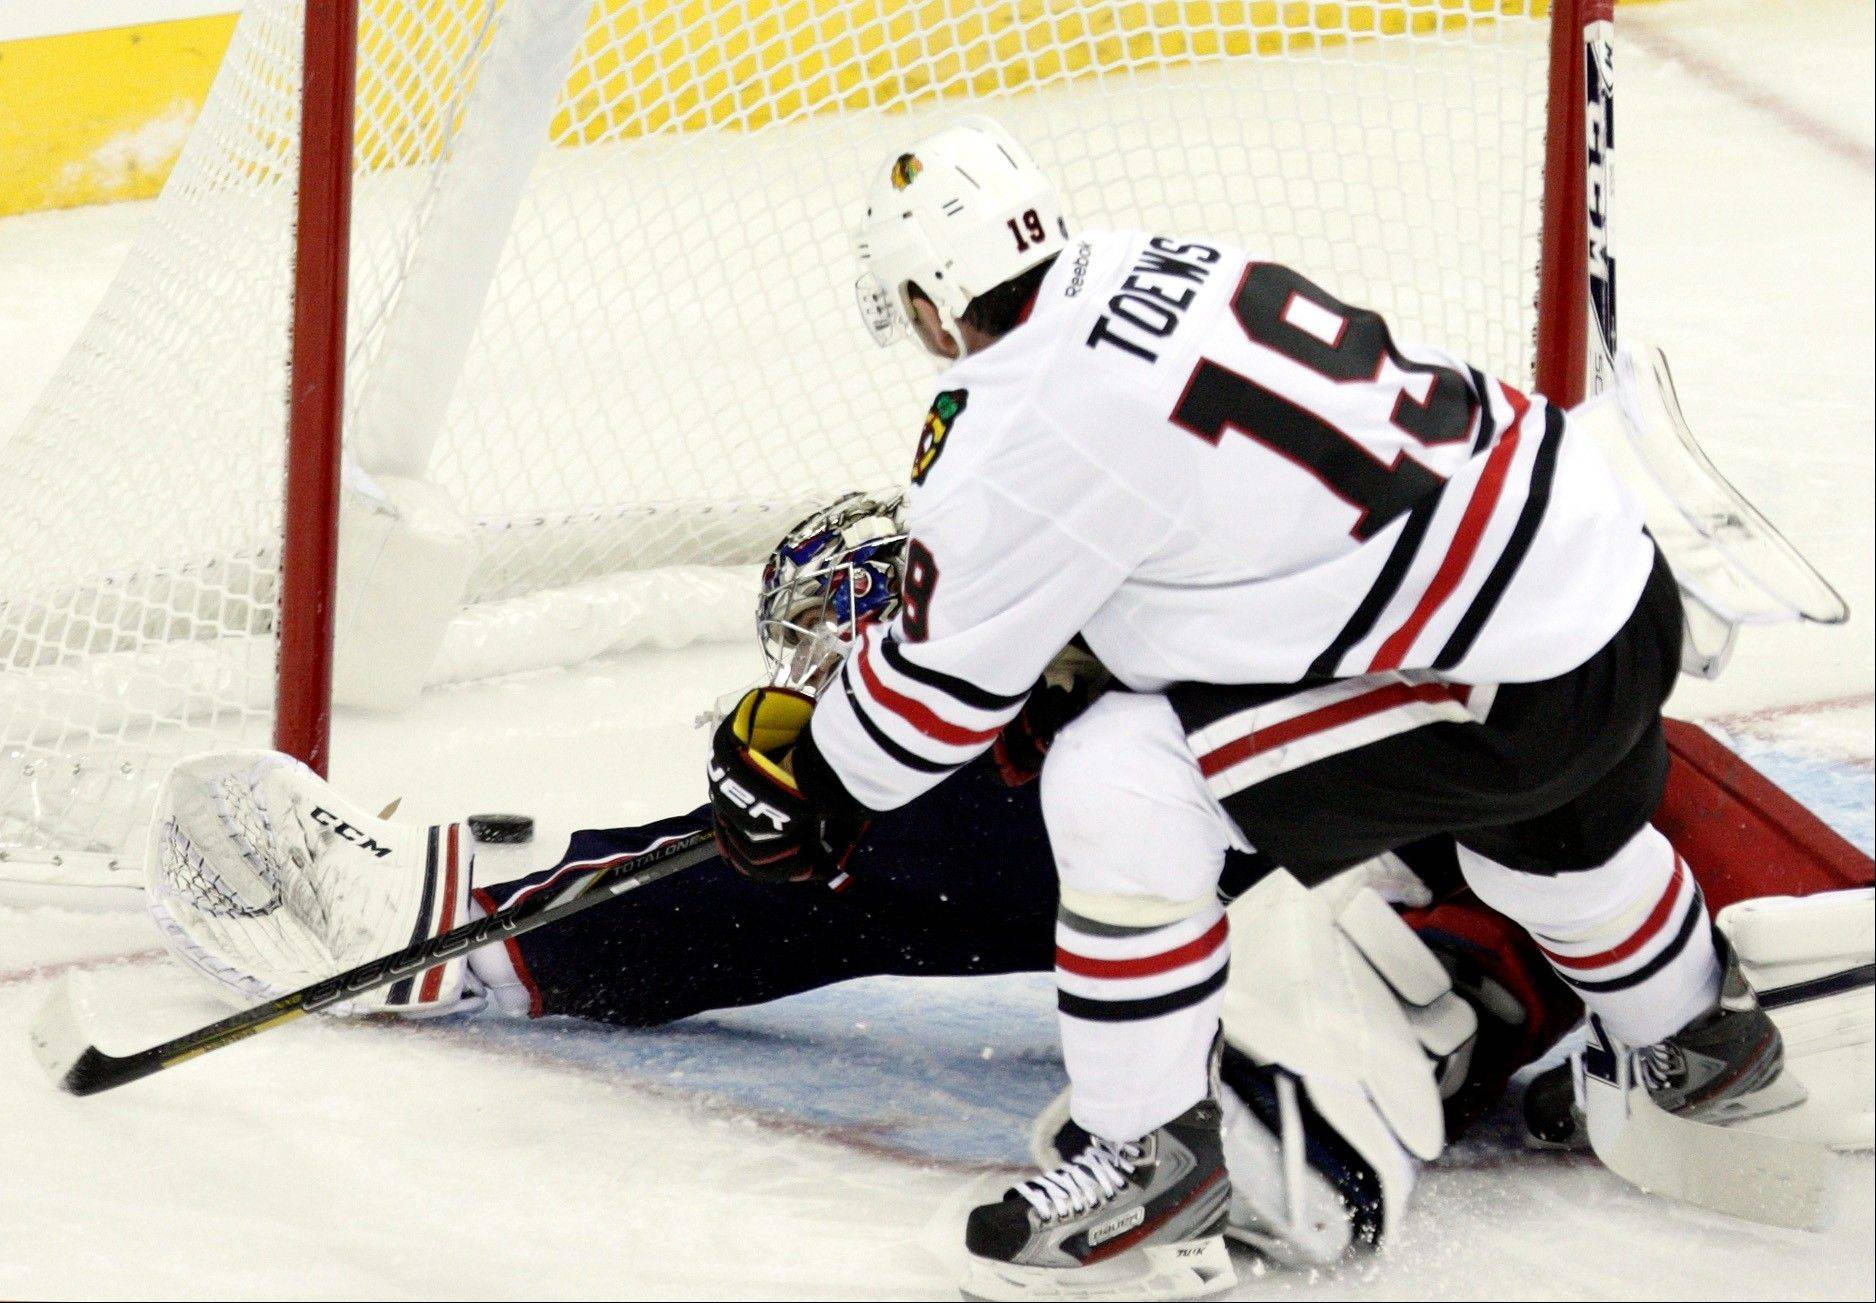 Jonathan Toews, right, scores against Columbus Blue Jackets' Steve Mason in the third period of an NHL hockey game in Columbus, Ohio, Saturday, Jan. 26, 2013. Chicago won 3-2.